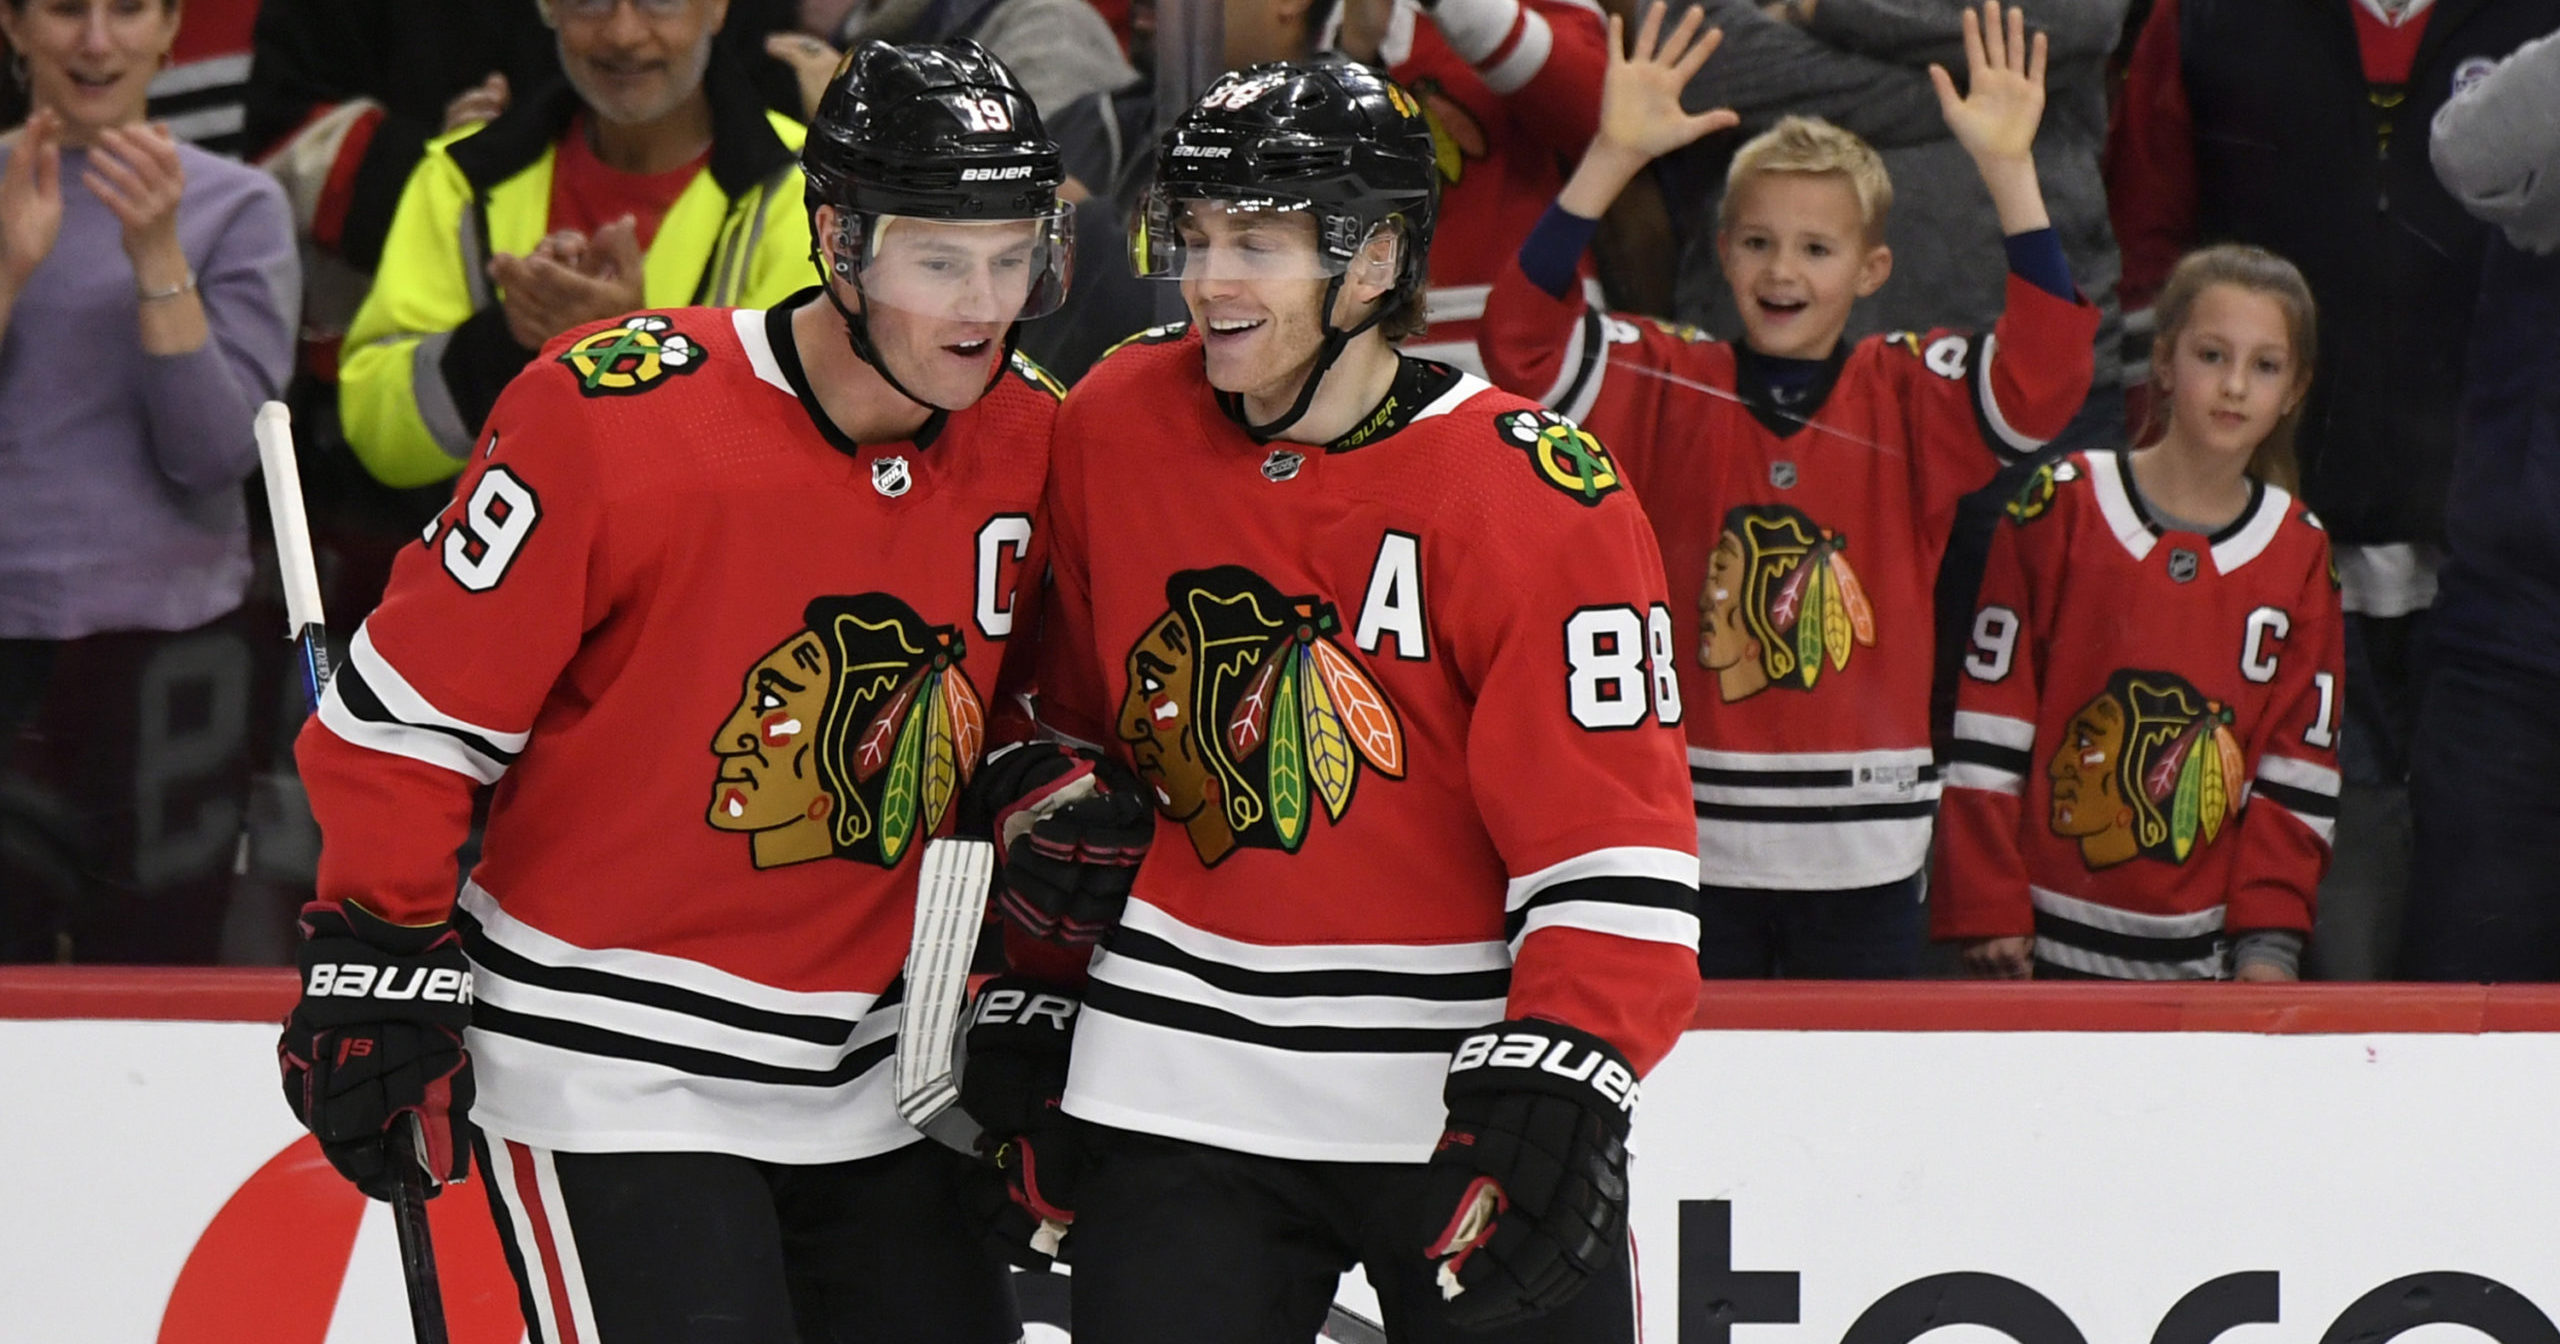 Chicago Blackhawks' Patrick Kane, right, celebrates with teammate Jonathan Toews after scoring a hat trick during the third period of an NHL hockey game against the Minnesota Wild in Chicago on Dec. 15, 2019.